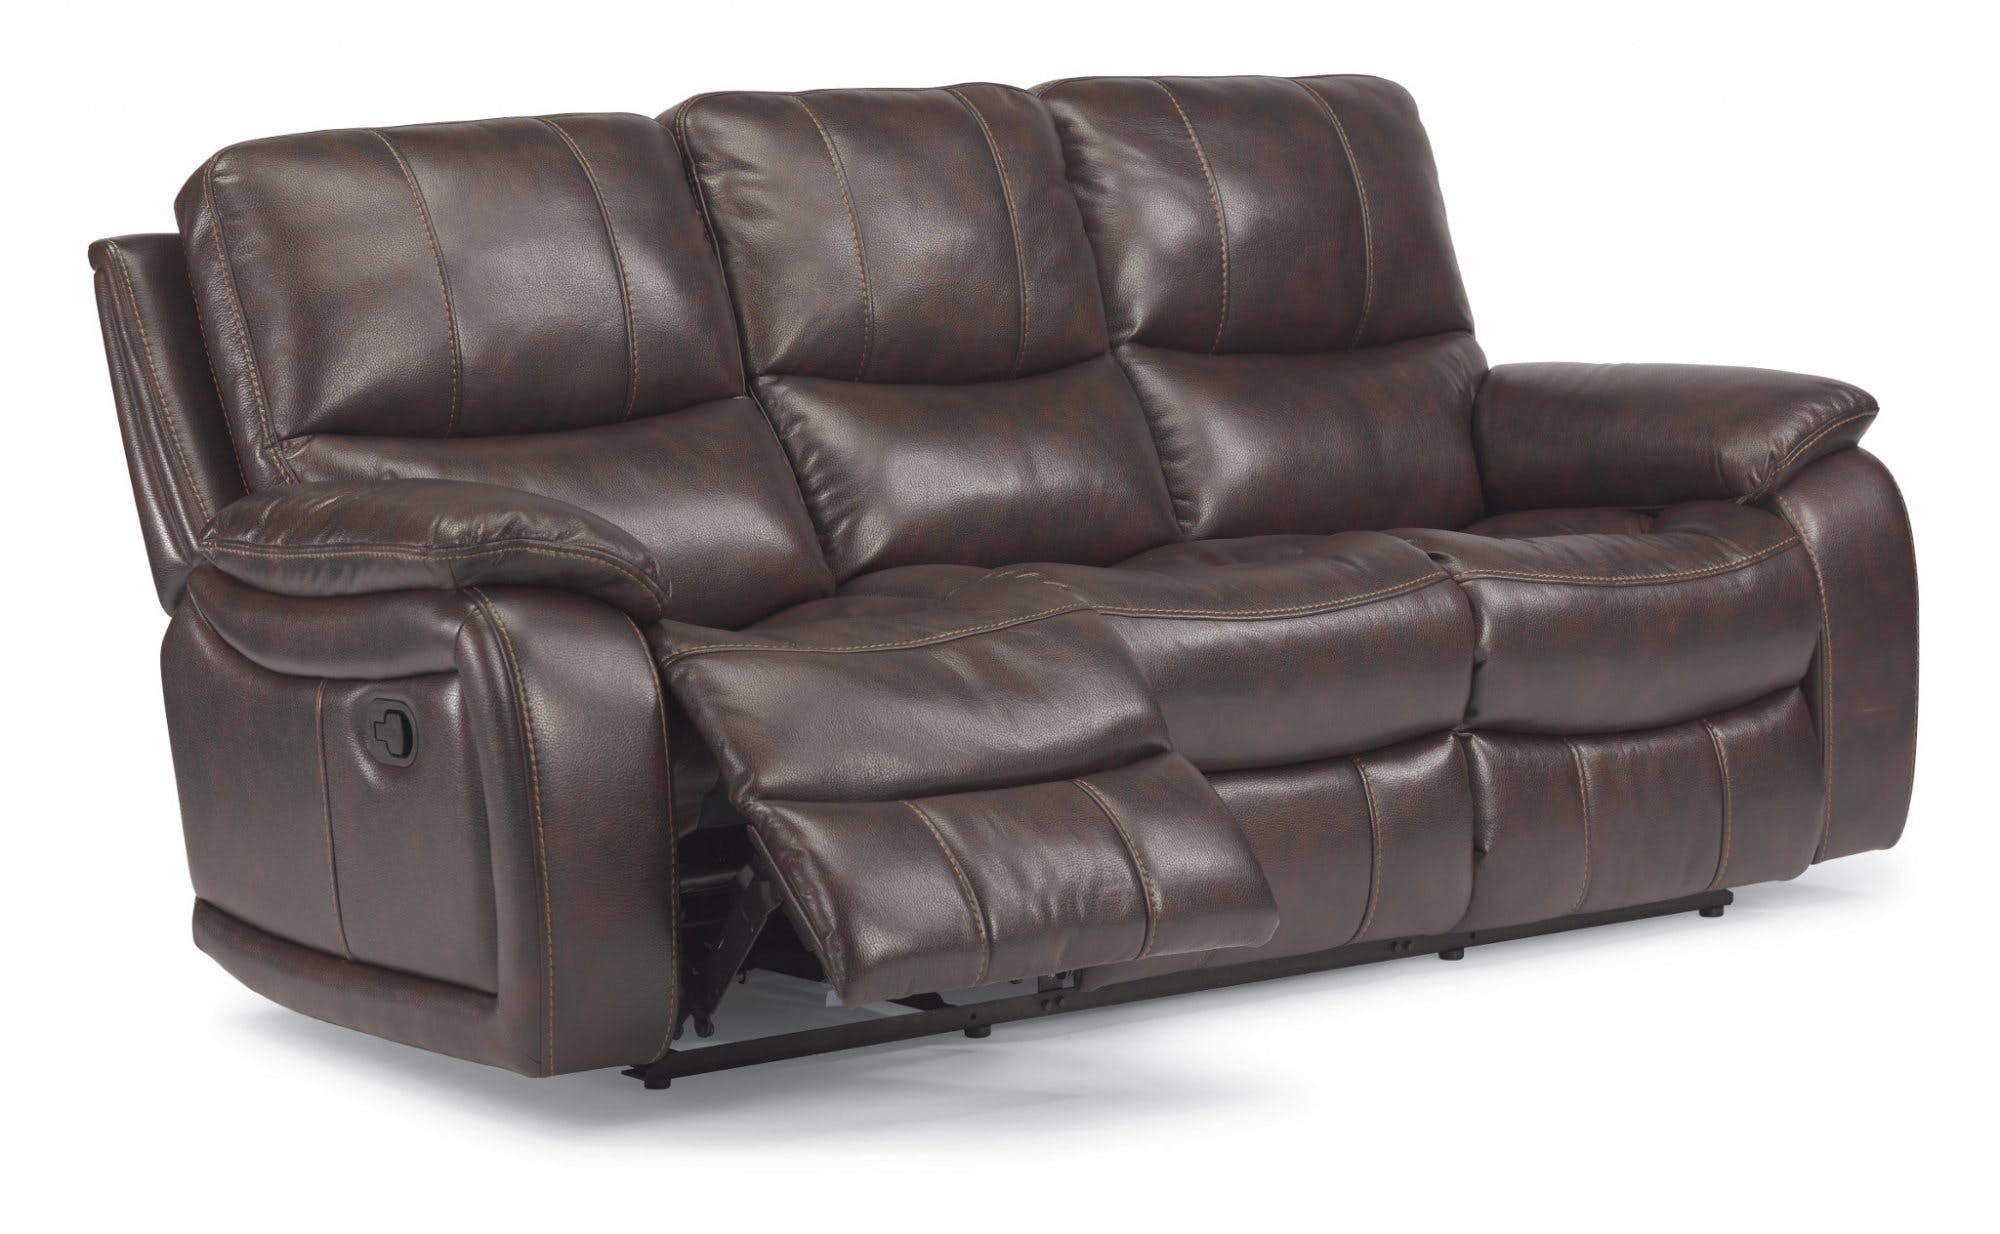 Flexsteel Fabric Reclining Sofa 1298-62